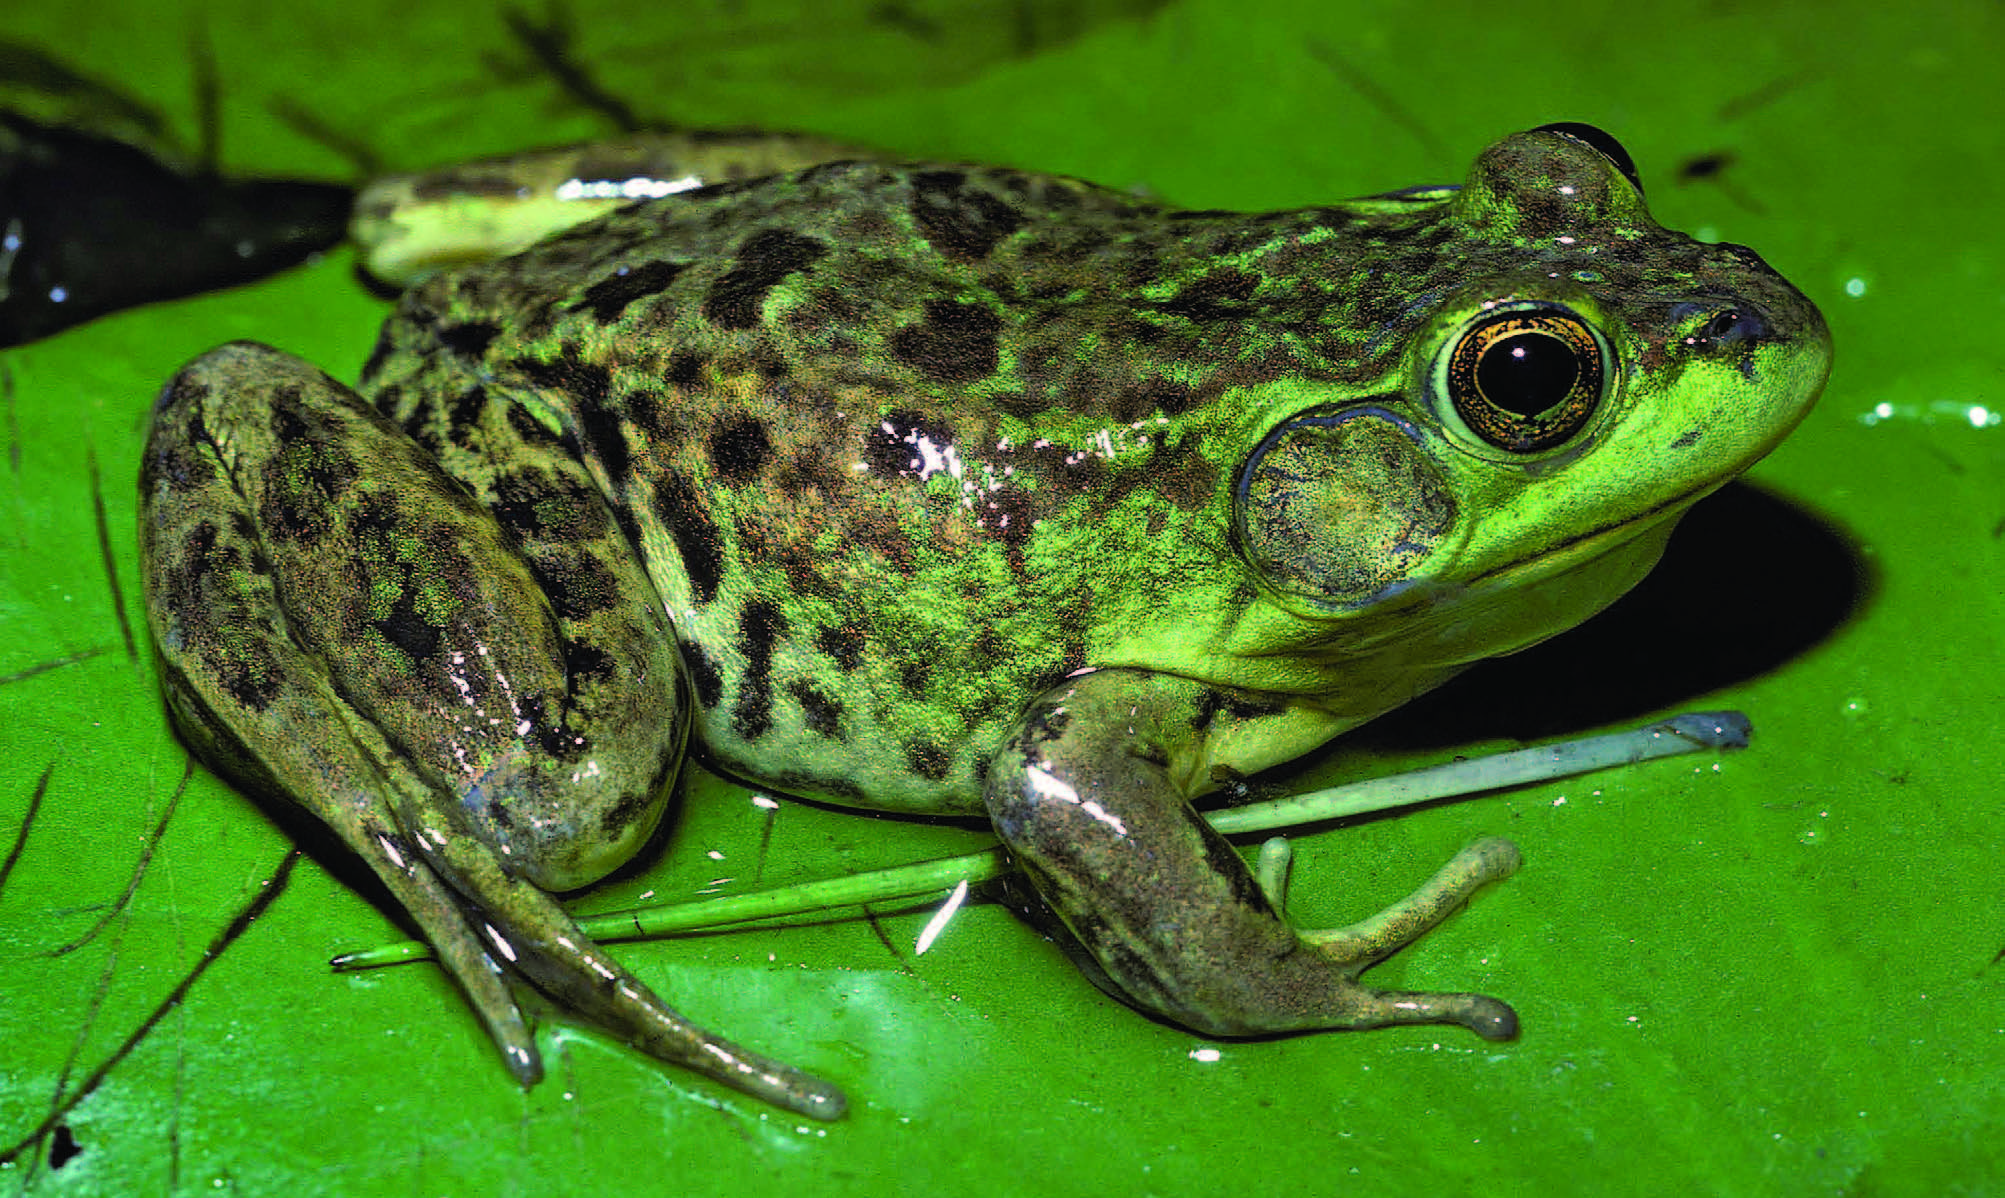 The Frogs and Toads of North America - Adirondack Explorer ...: www.adirondackexplorer.org/book_reviews/the-frogs-and-toads-of...